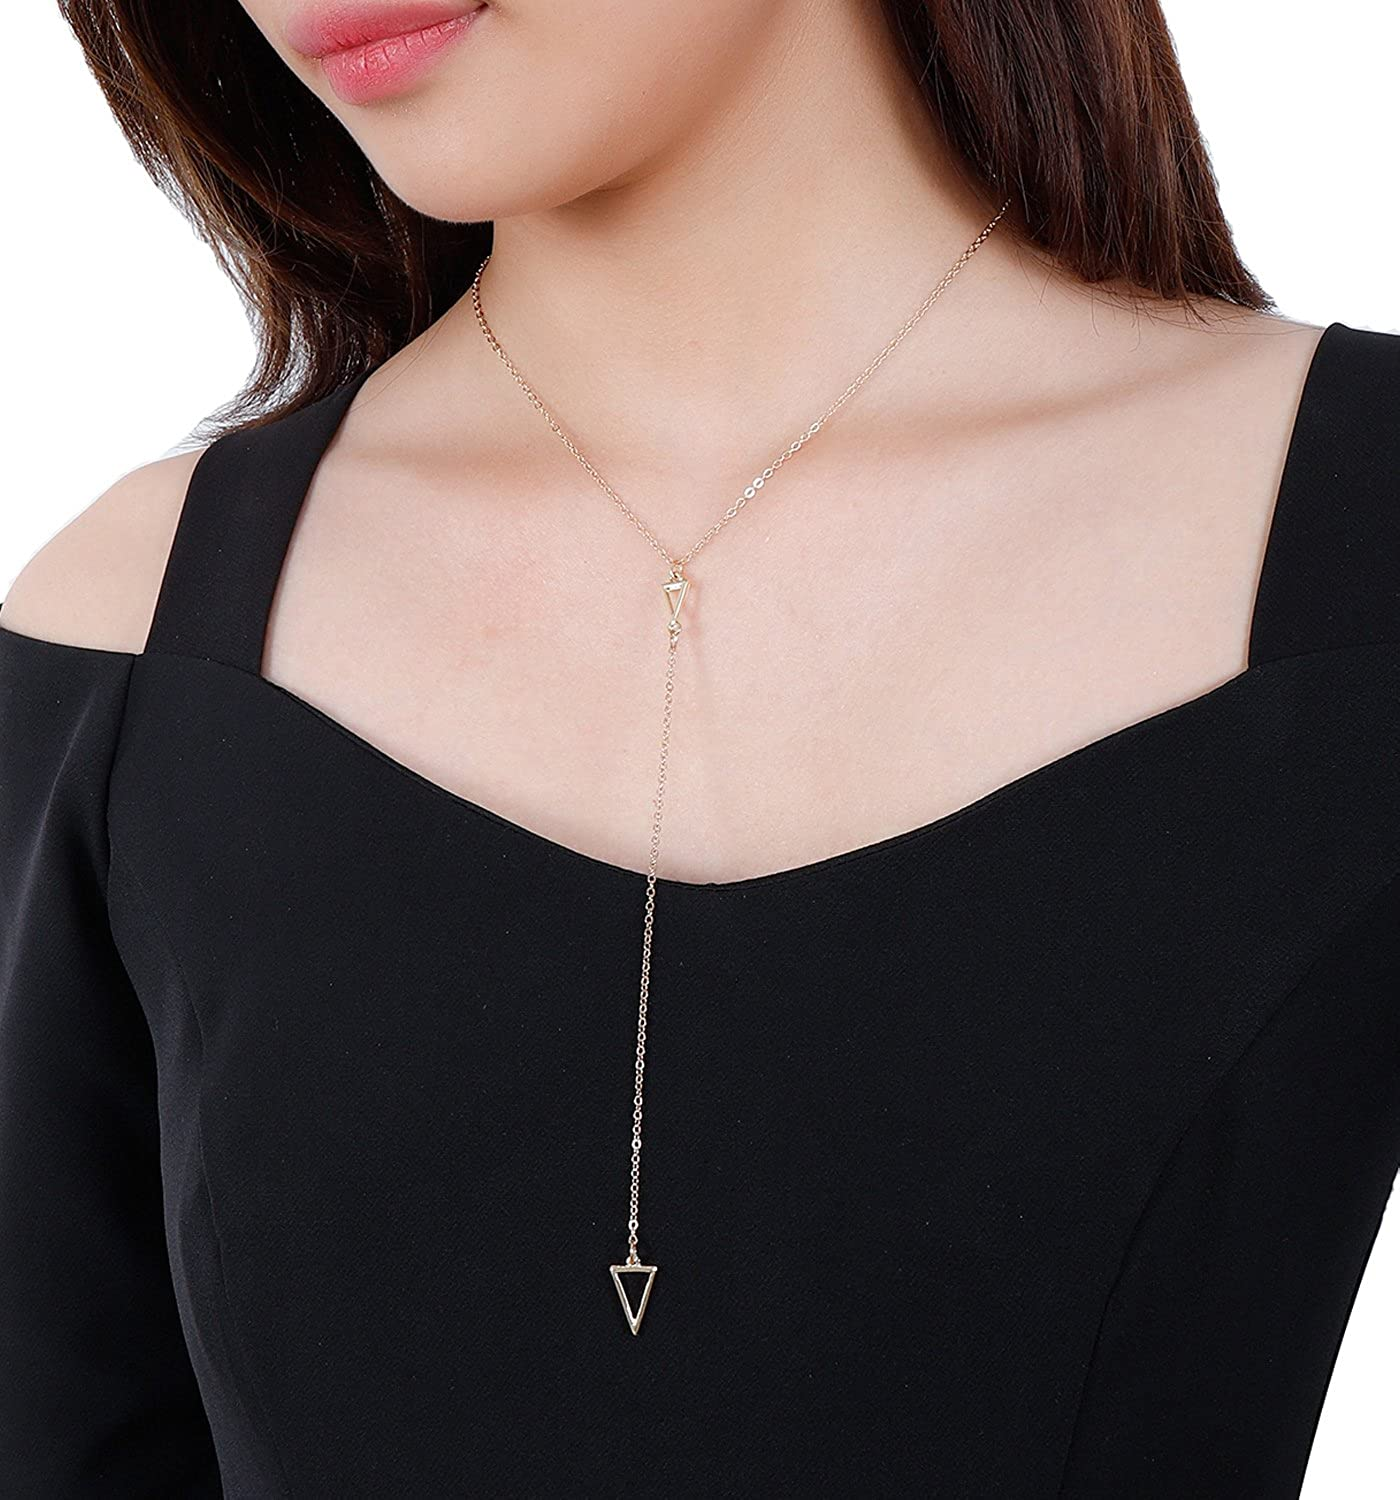 LIAO Jewelry Open Triangle Pendant Necklace Delicate Simple Bar Minimalist Rolo Chain Necklaces for Girls B07CYQTWB5_US